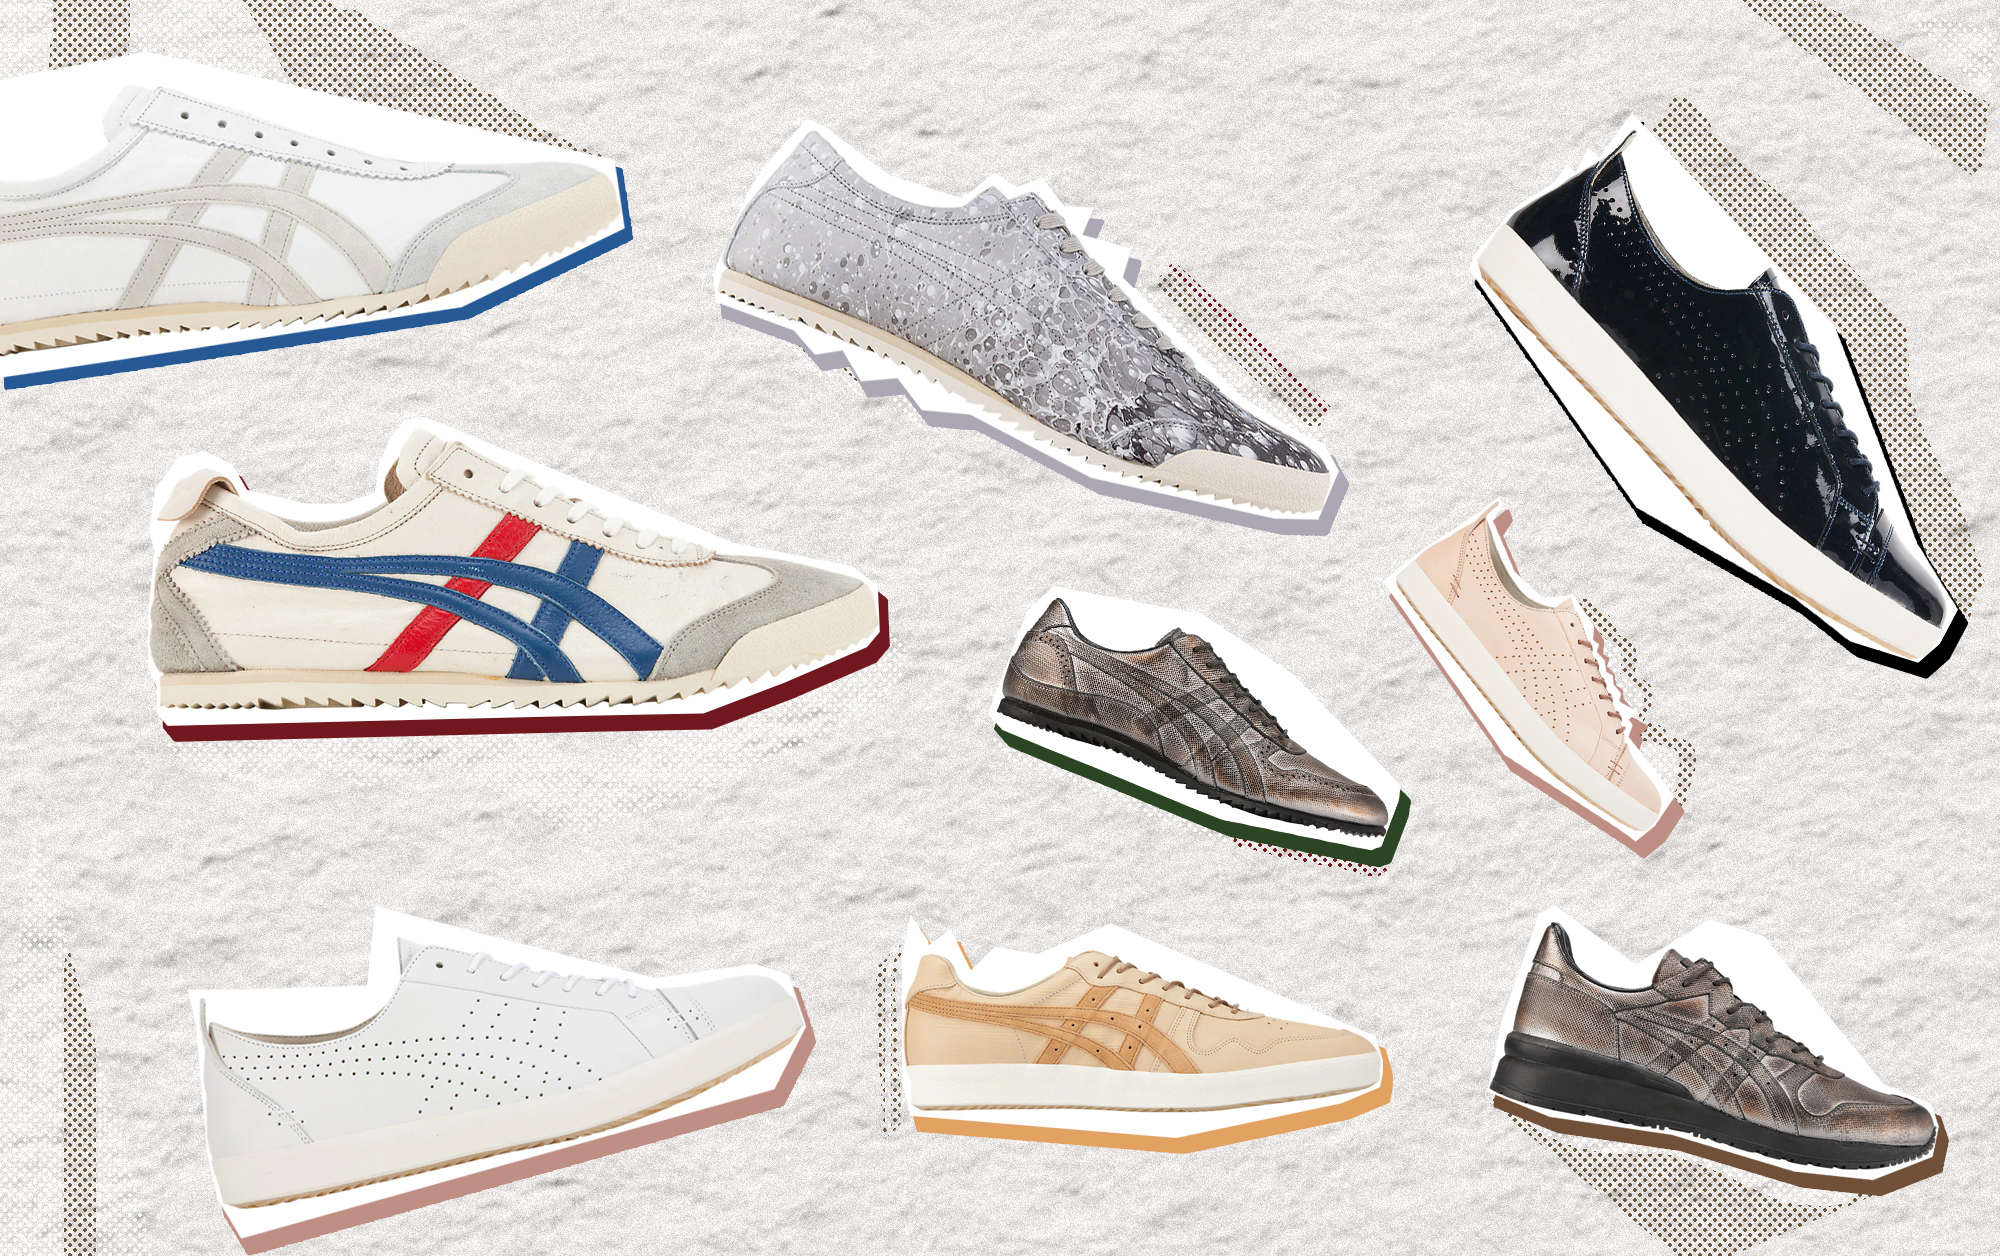 Shop The Exclusive Nippon Made Collection At The New Onitsuka Tiger Takashimaya Store